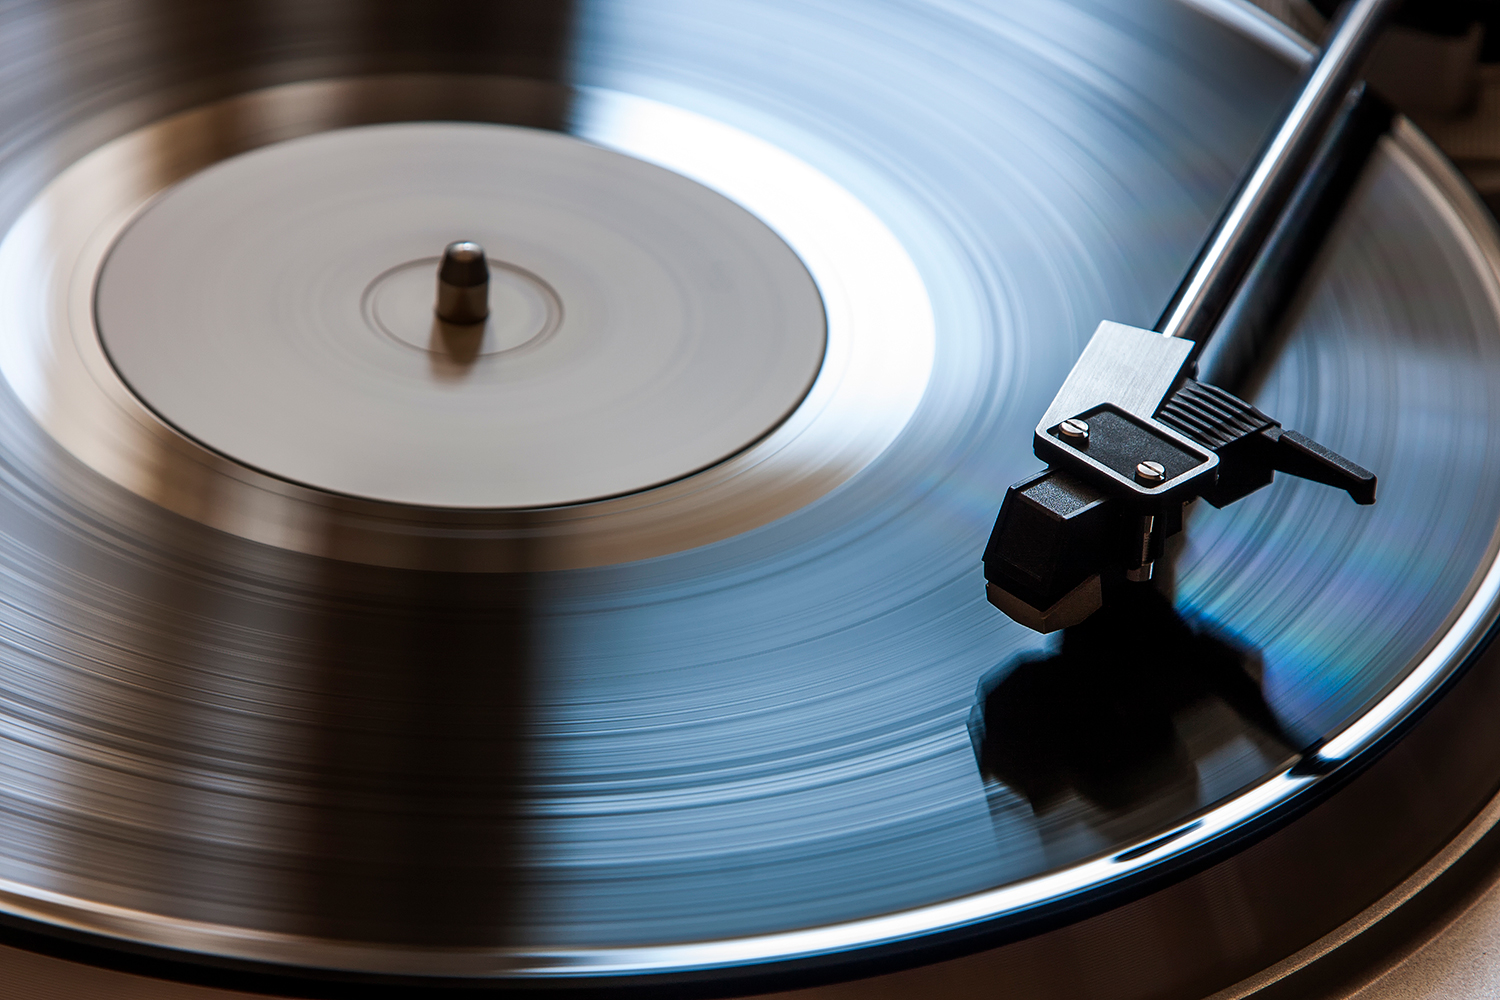 Sony Will Press Its Own Vinyl Records For The First Time